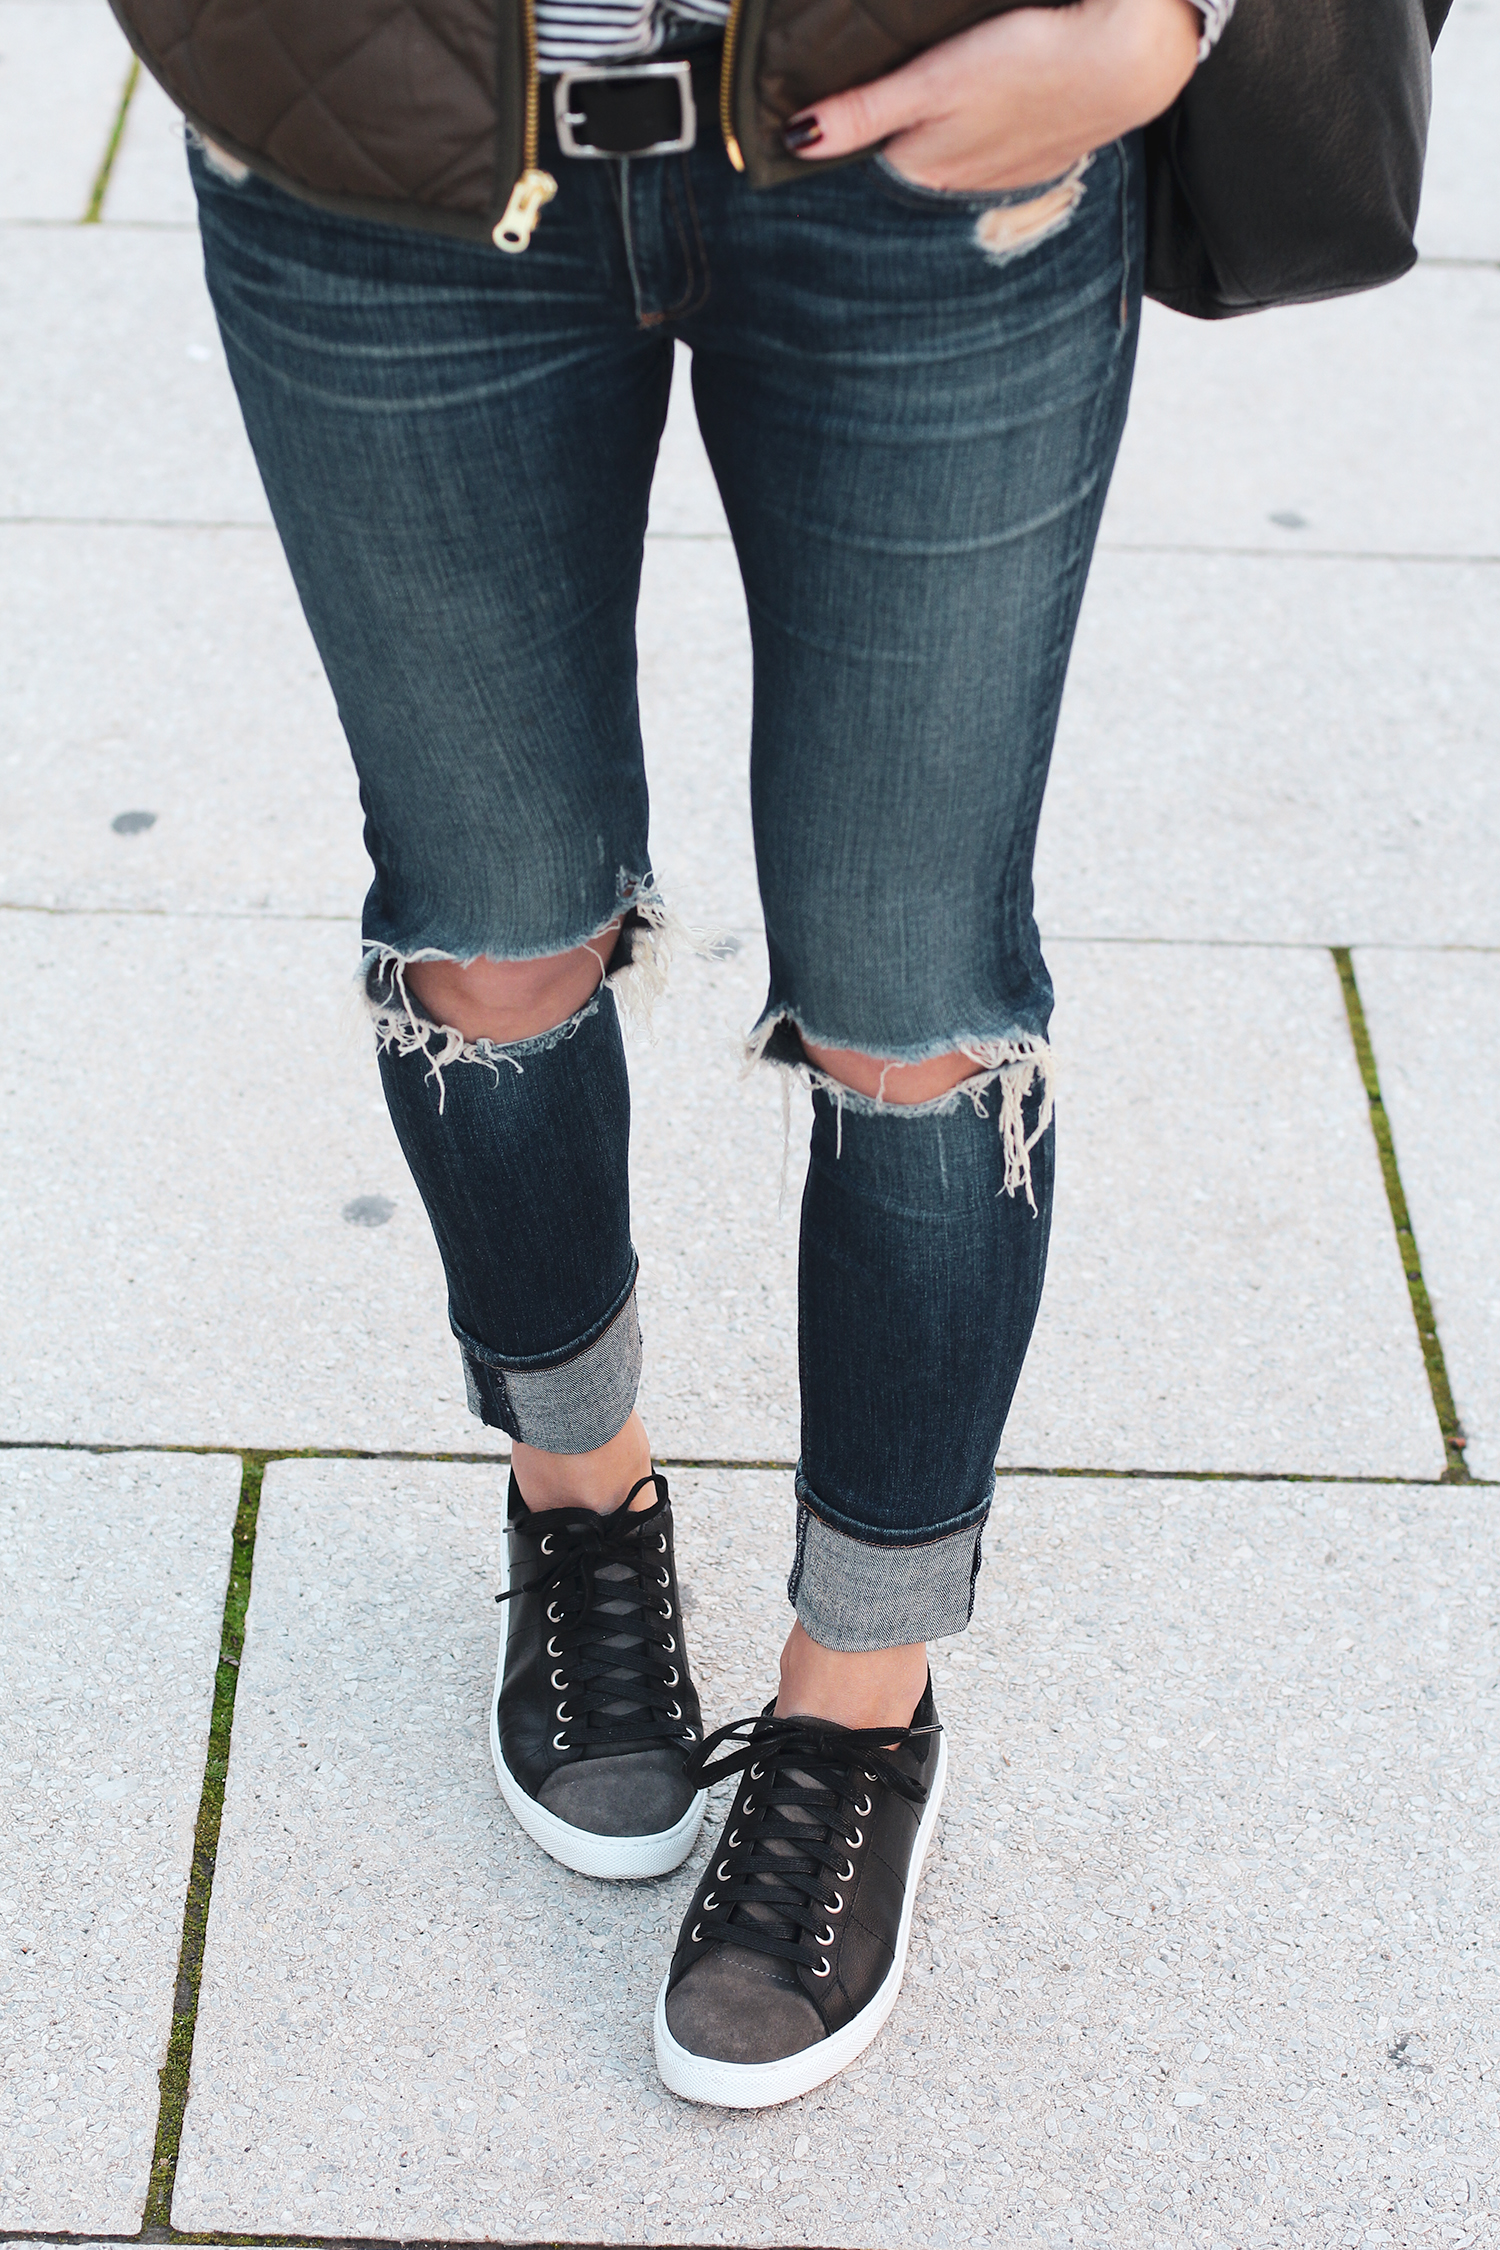 Casual Sneakers, Sneakers with Jeans Outfit